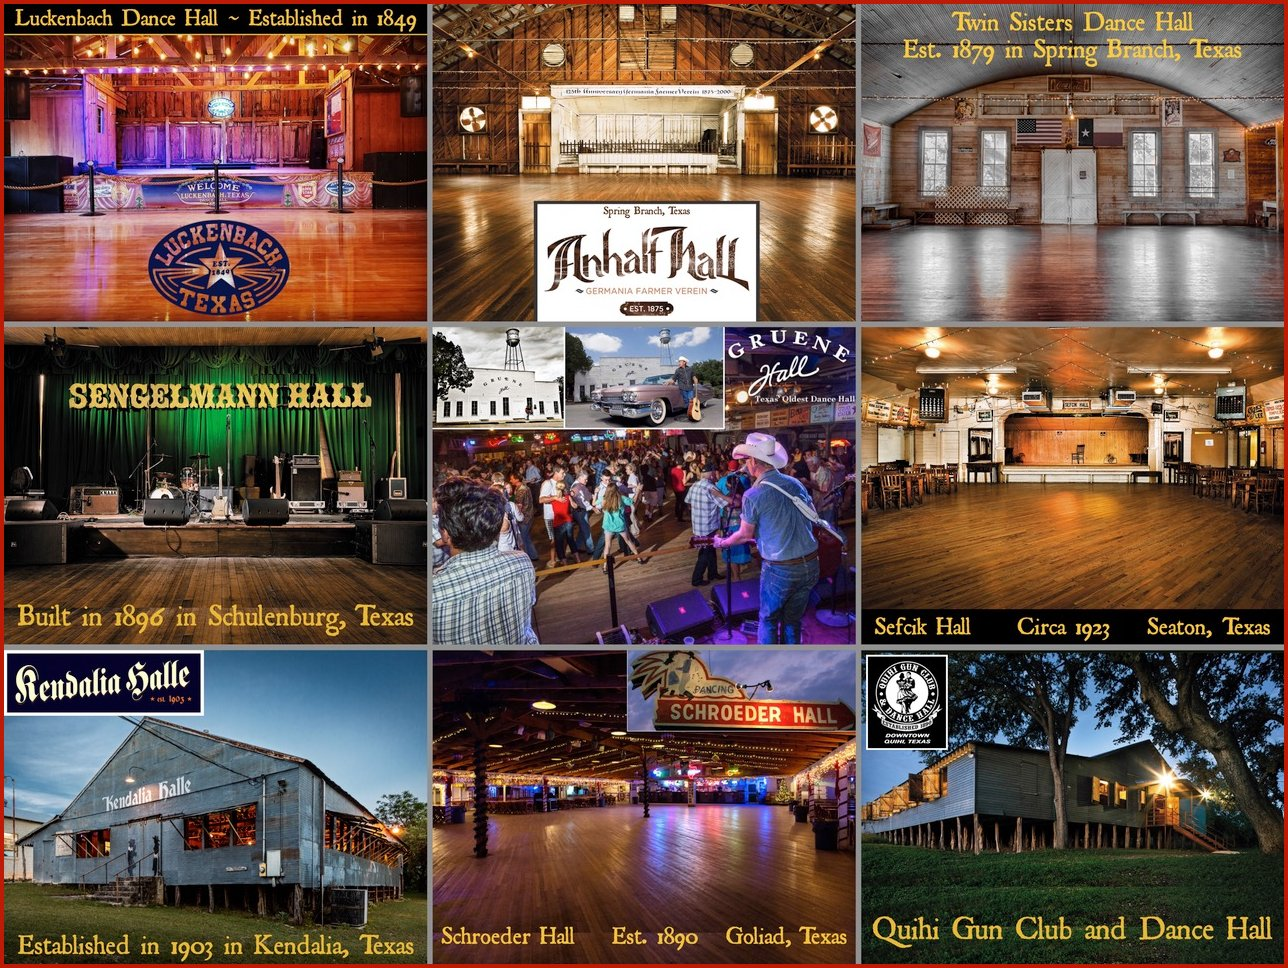 Historic Texas Dance Halls